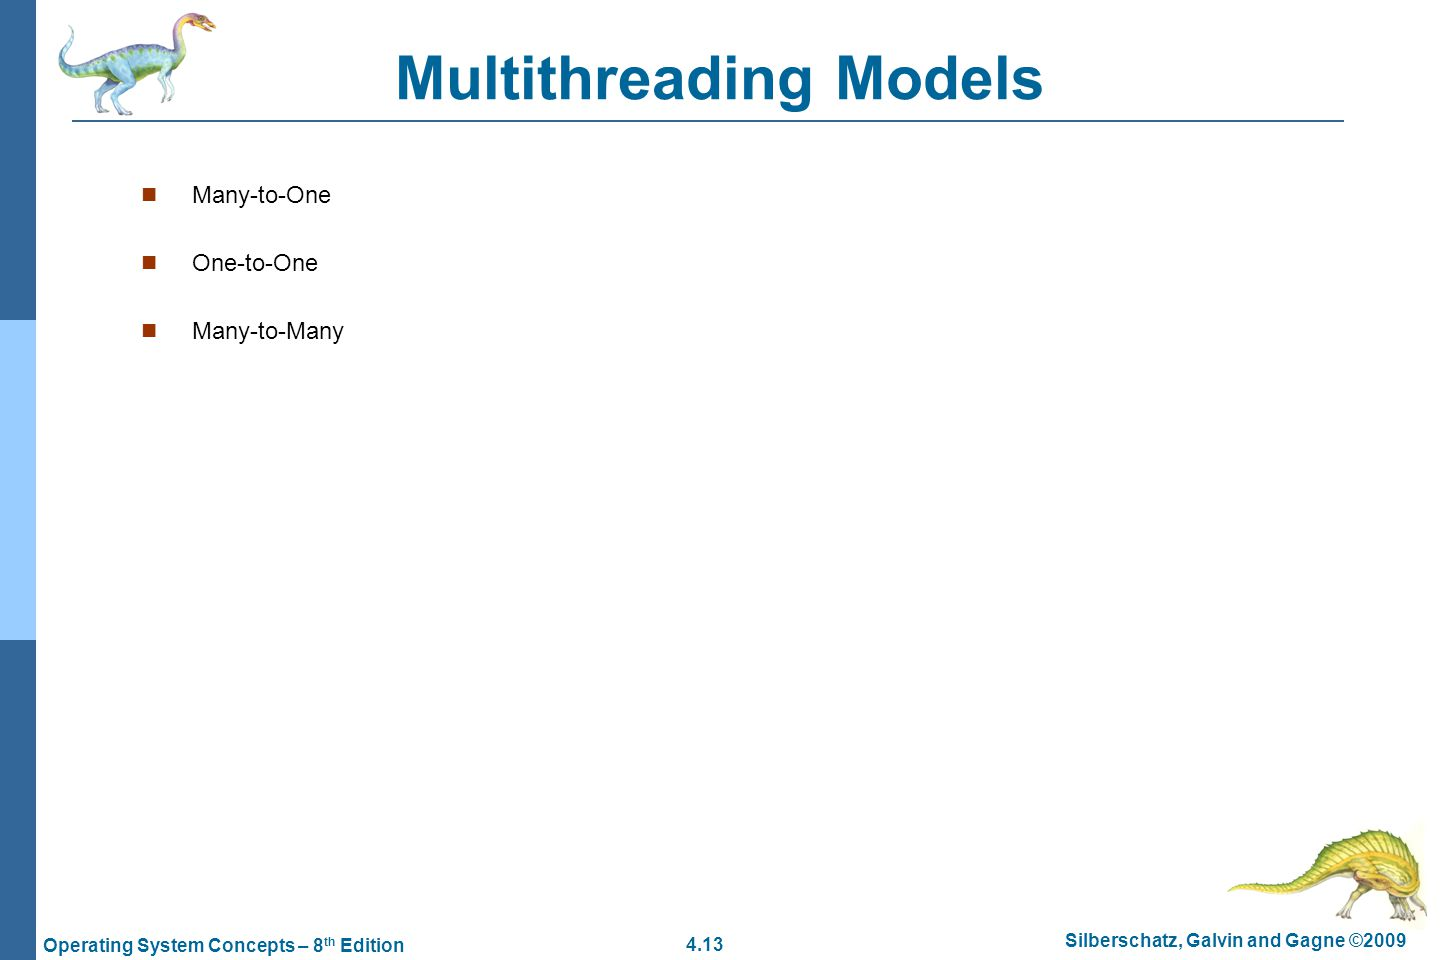 4.13 Silberschatz, Galvin and Gagne ©2009 Operating System Concepts – 8 th Edition Multithreading Models Many-to-One One-to-One Many-to-Many